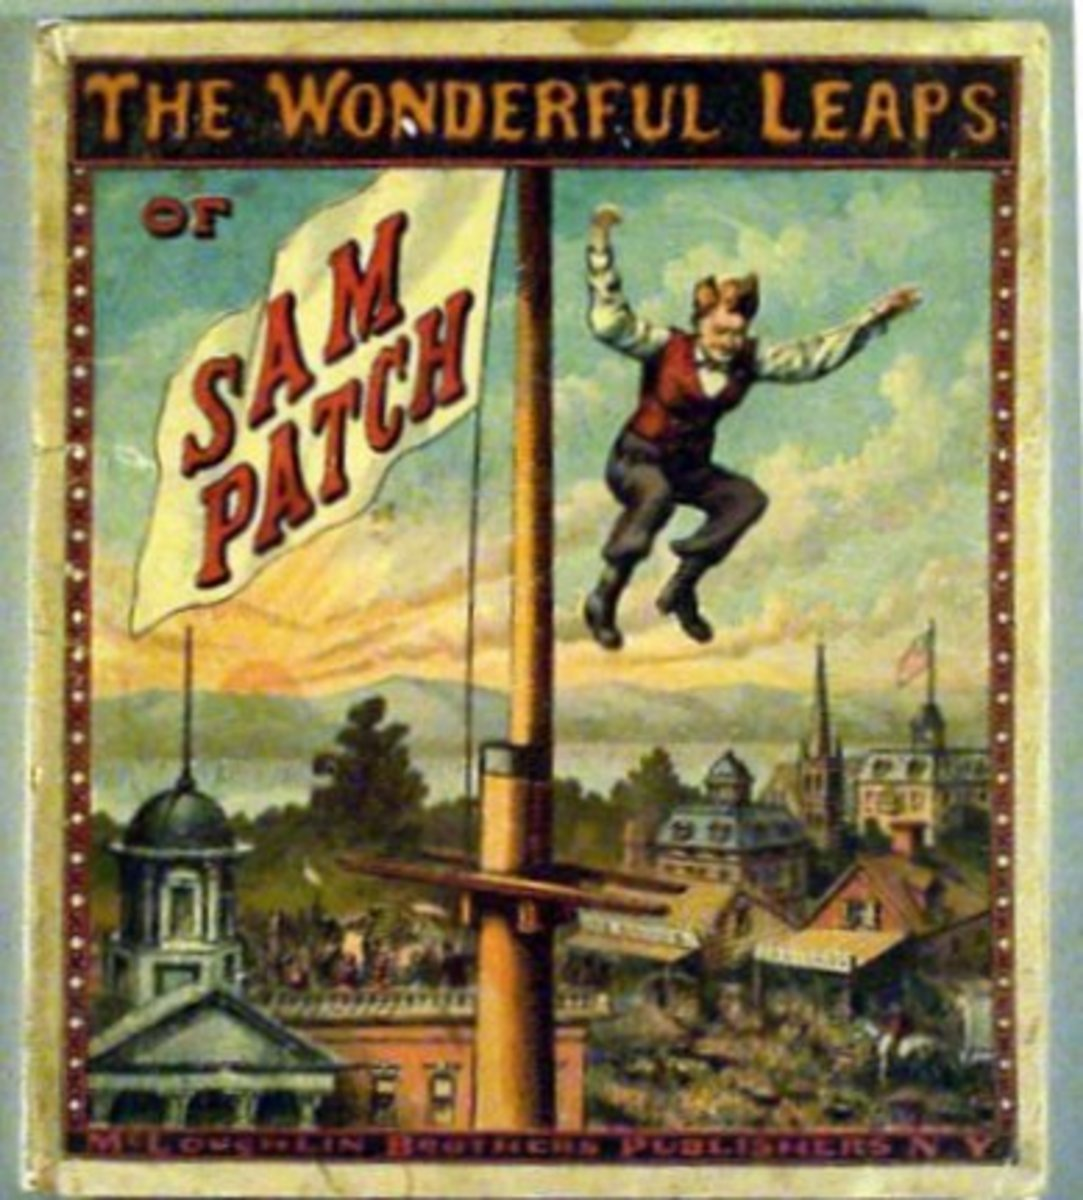 1870 Book Cover Illustration of The Wonderful Leaps of Sam Patch